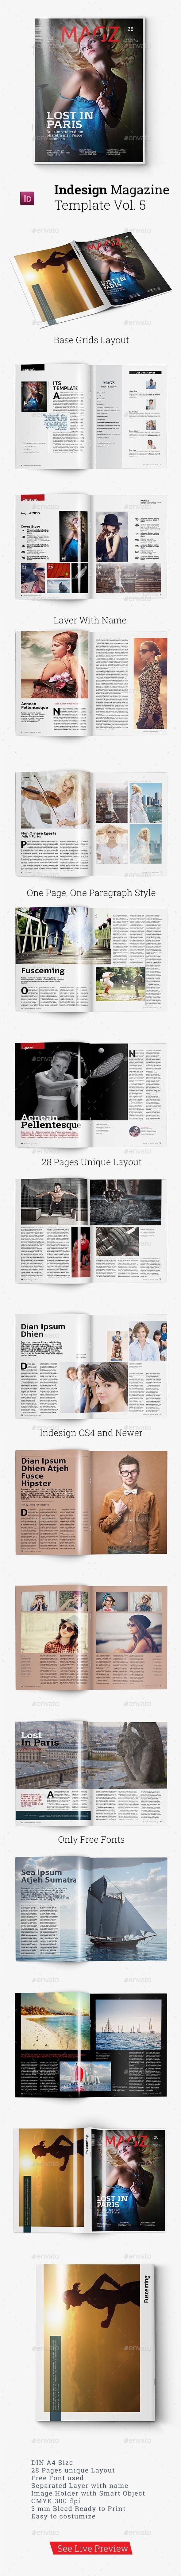 Magazine Template Vol.5 | Template, Print templates and Indesign ...